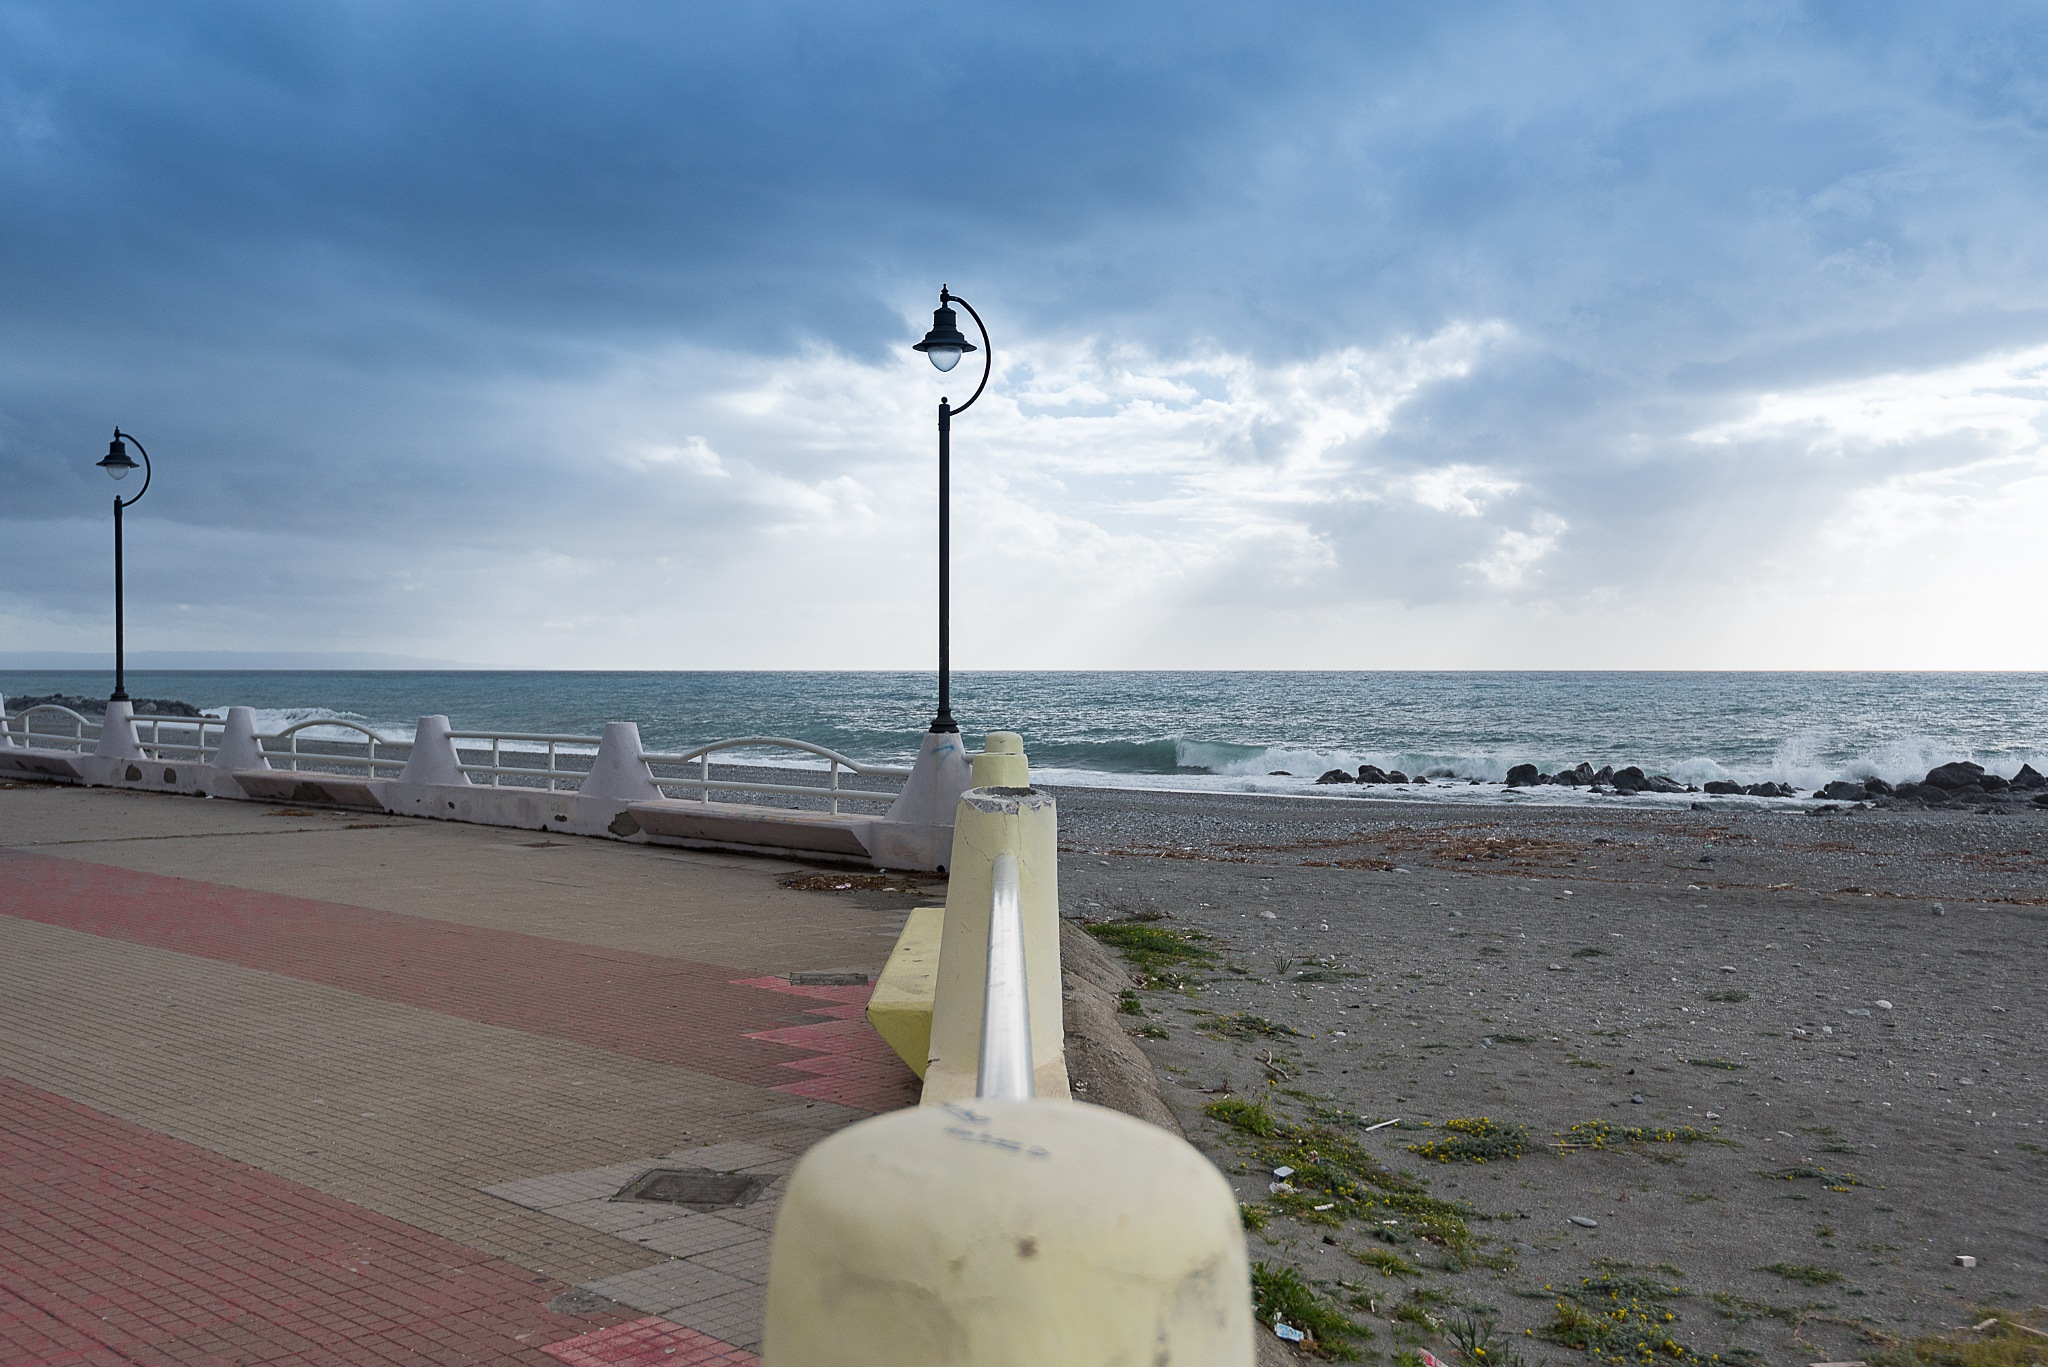 A view of the beach  by anto71